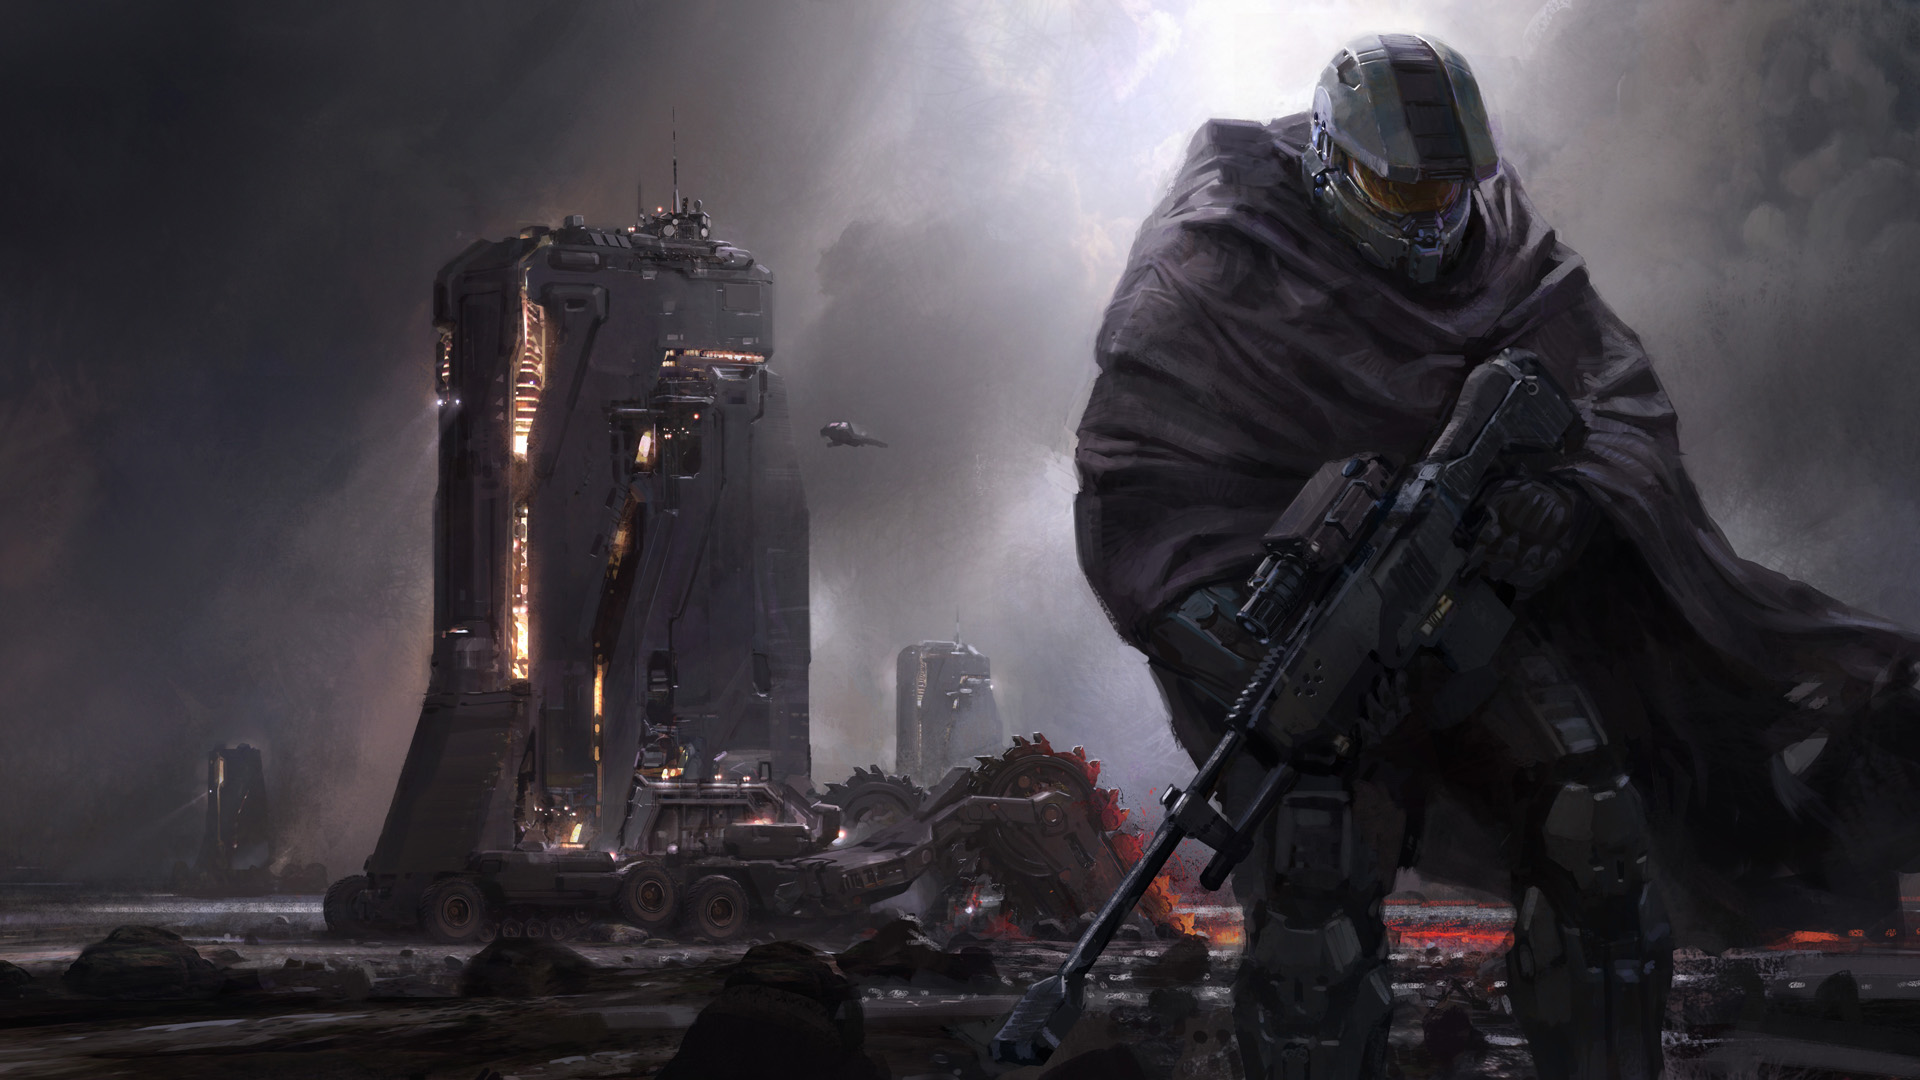 Halo 5: Guardians (2015) promotional art - MobyGames